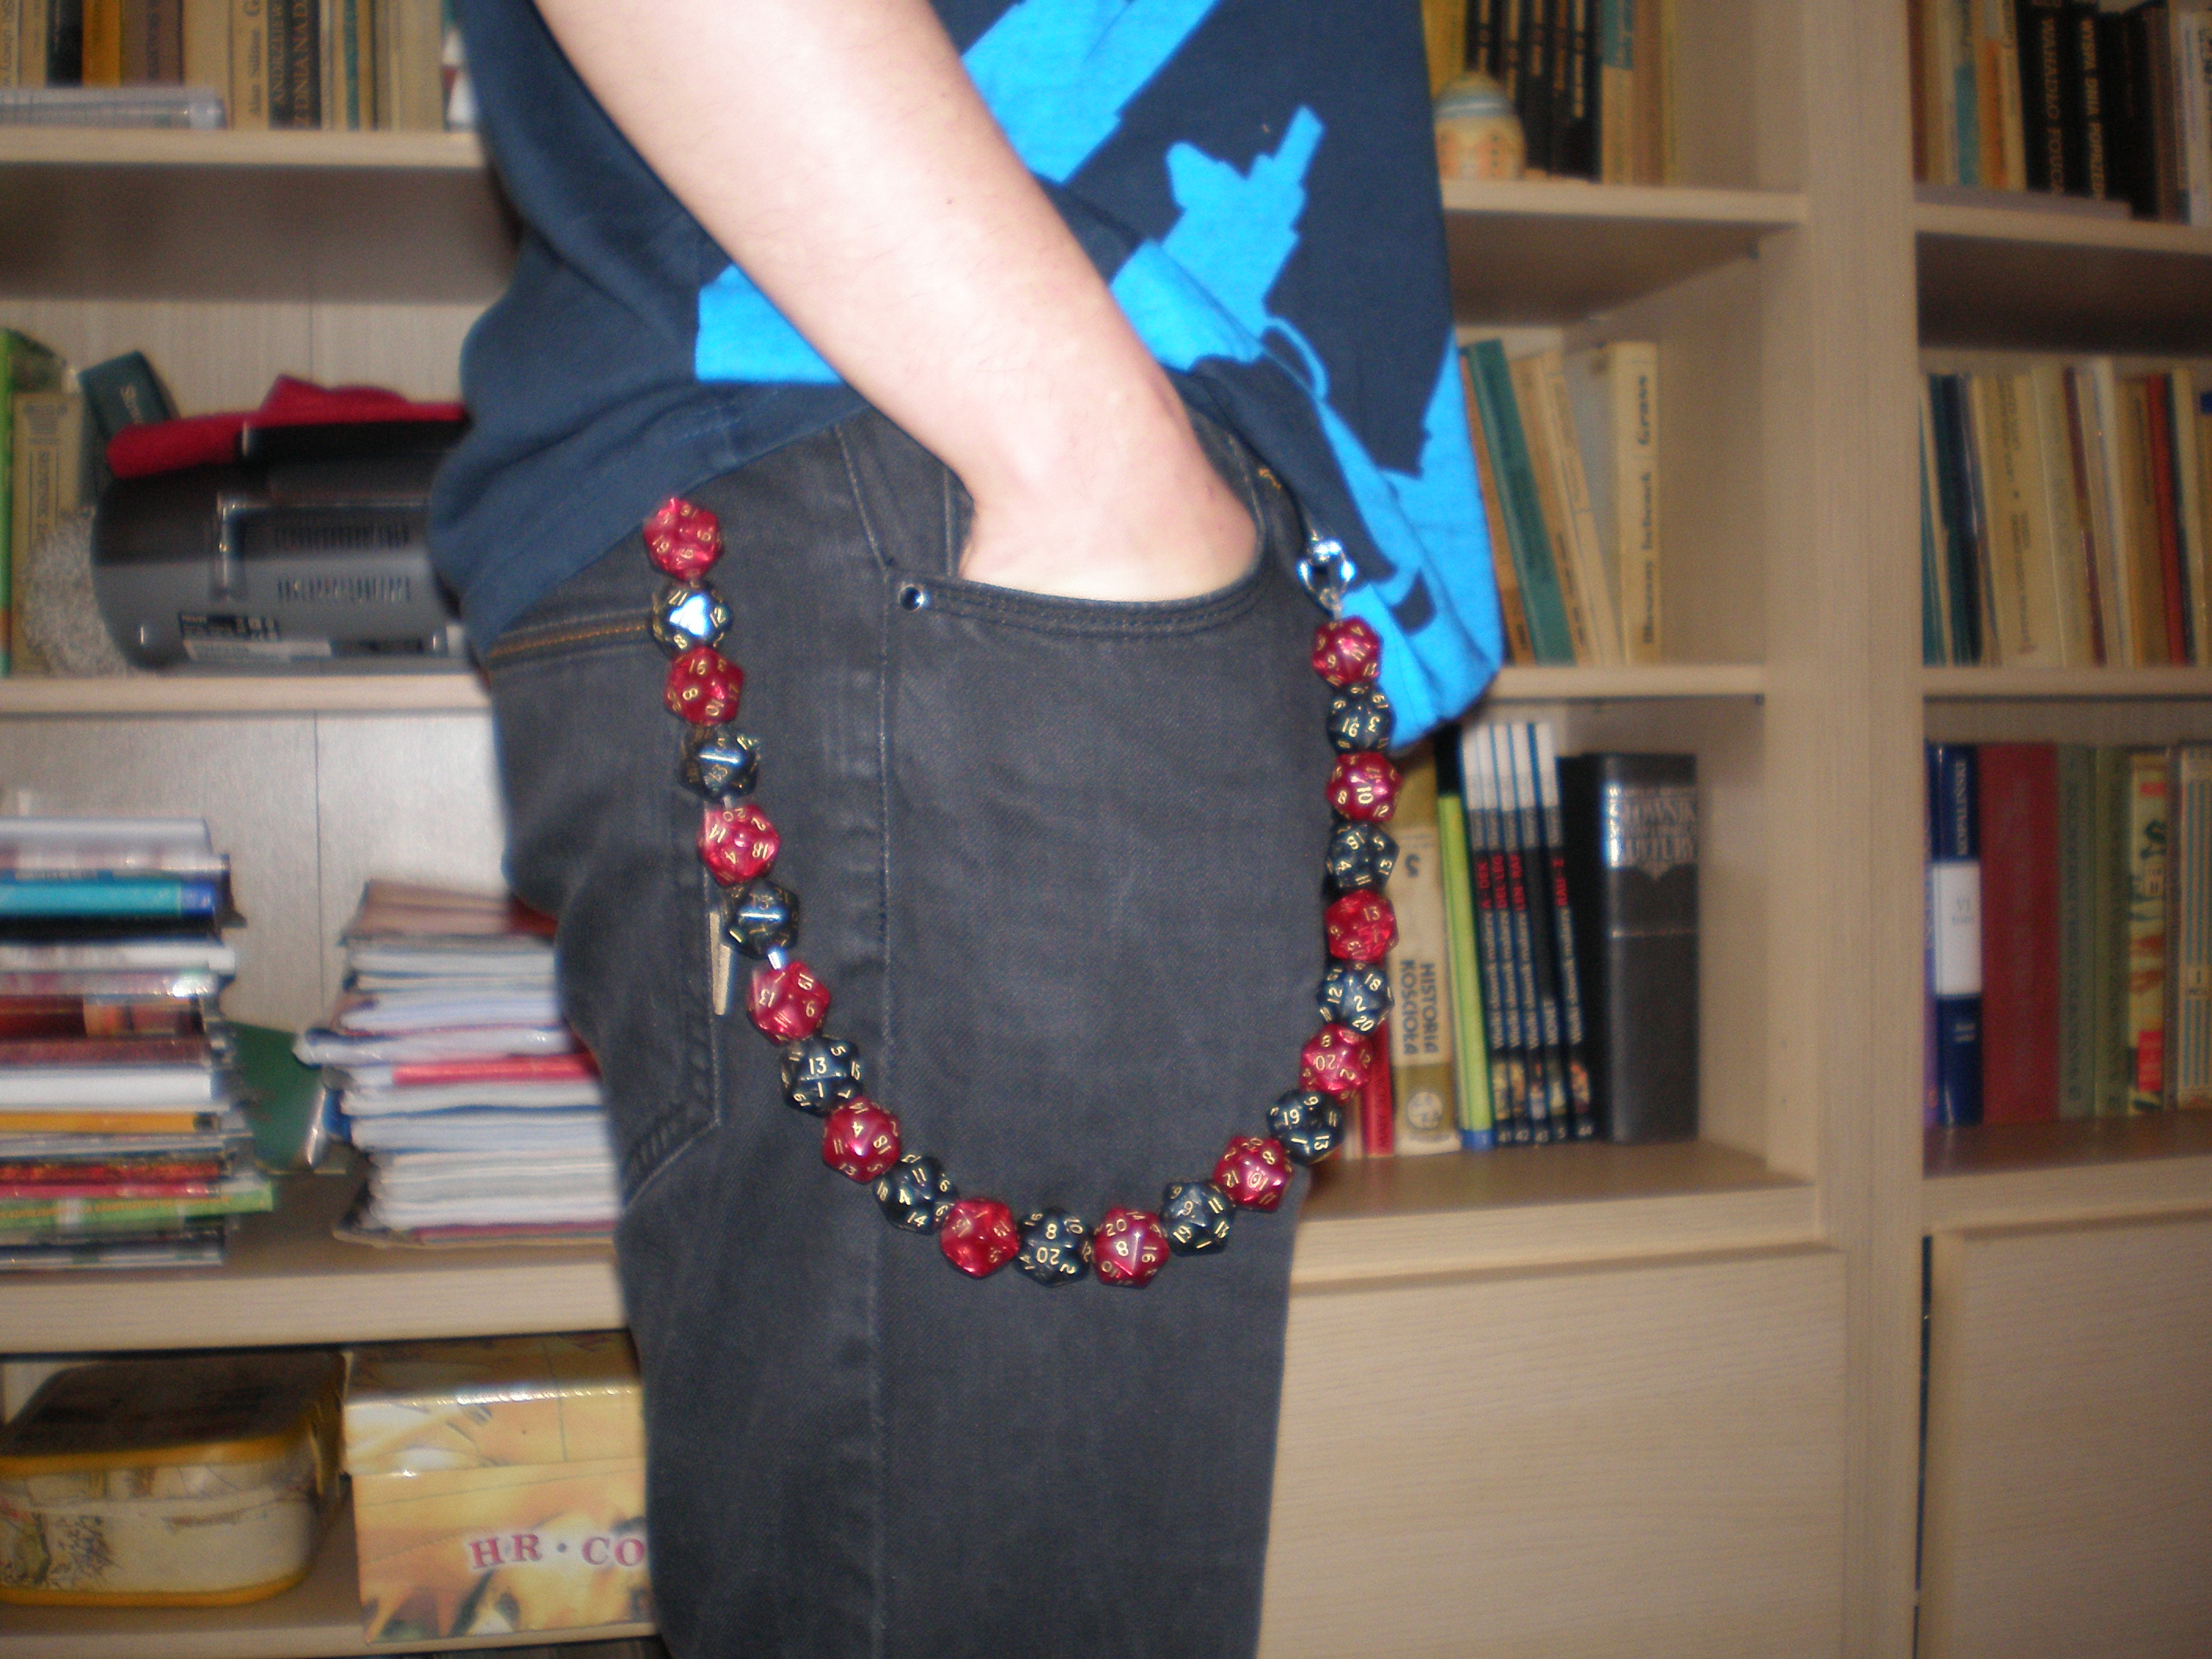 Picture of Geek Chain: Chain Made Out of D20 Dice